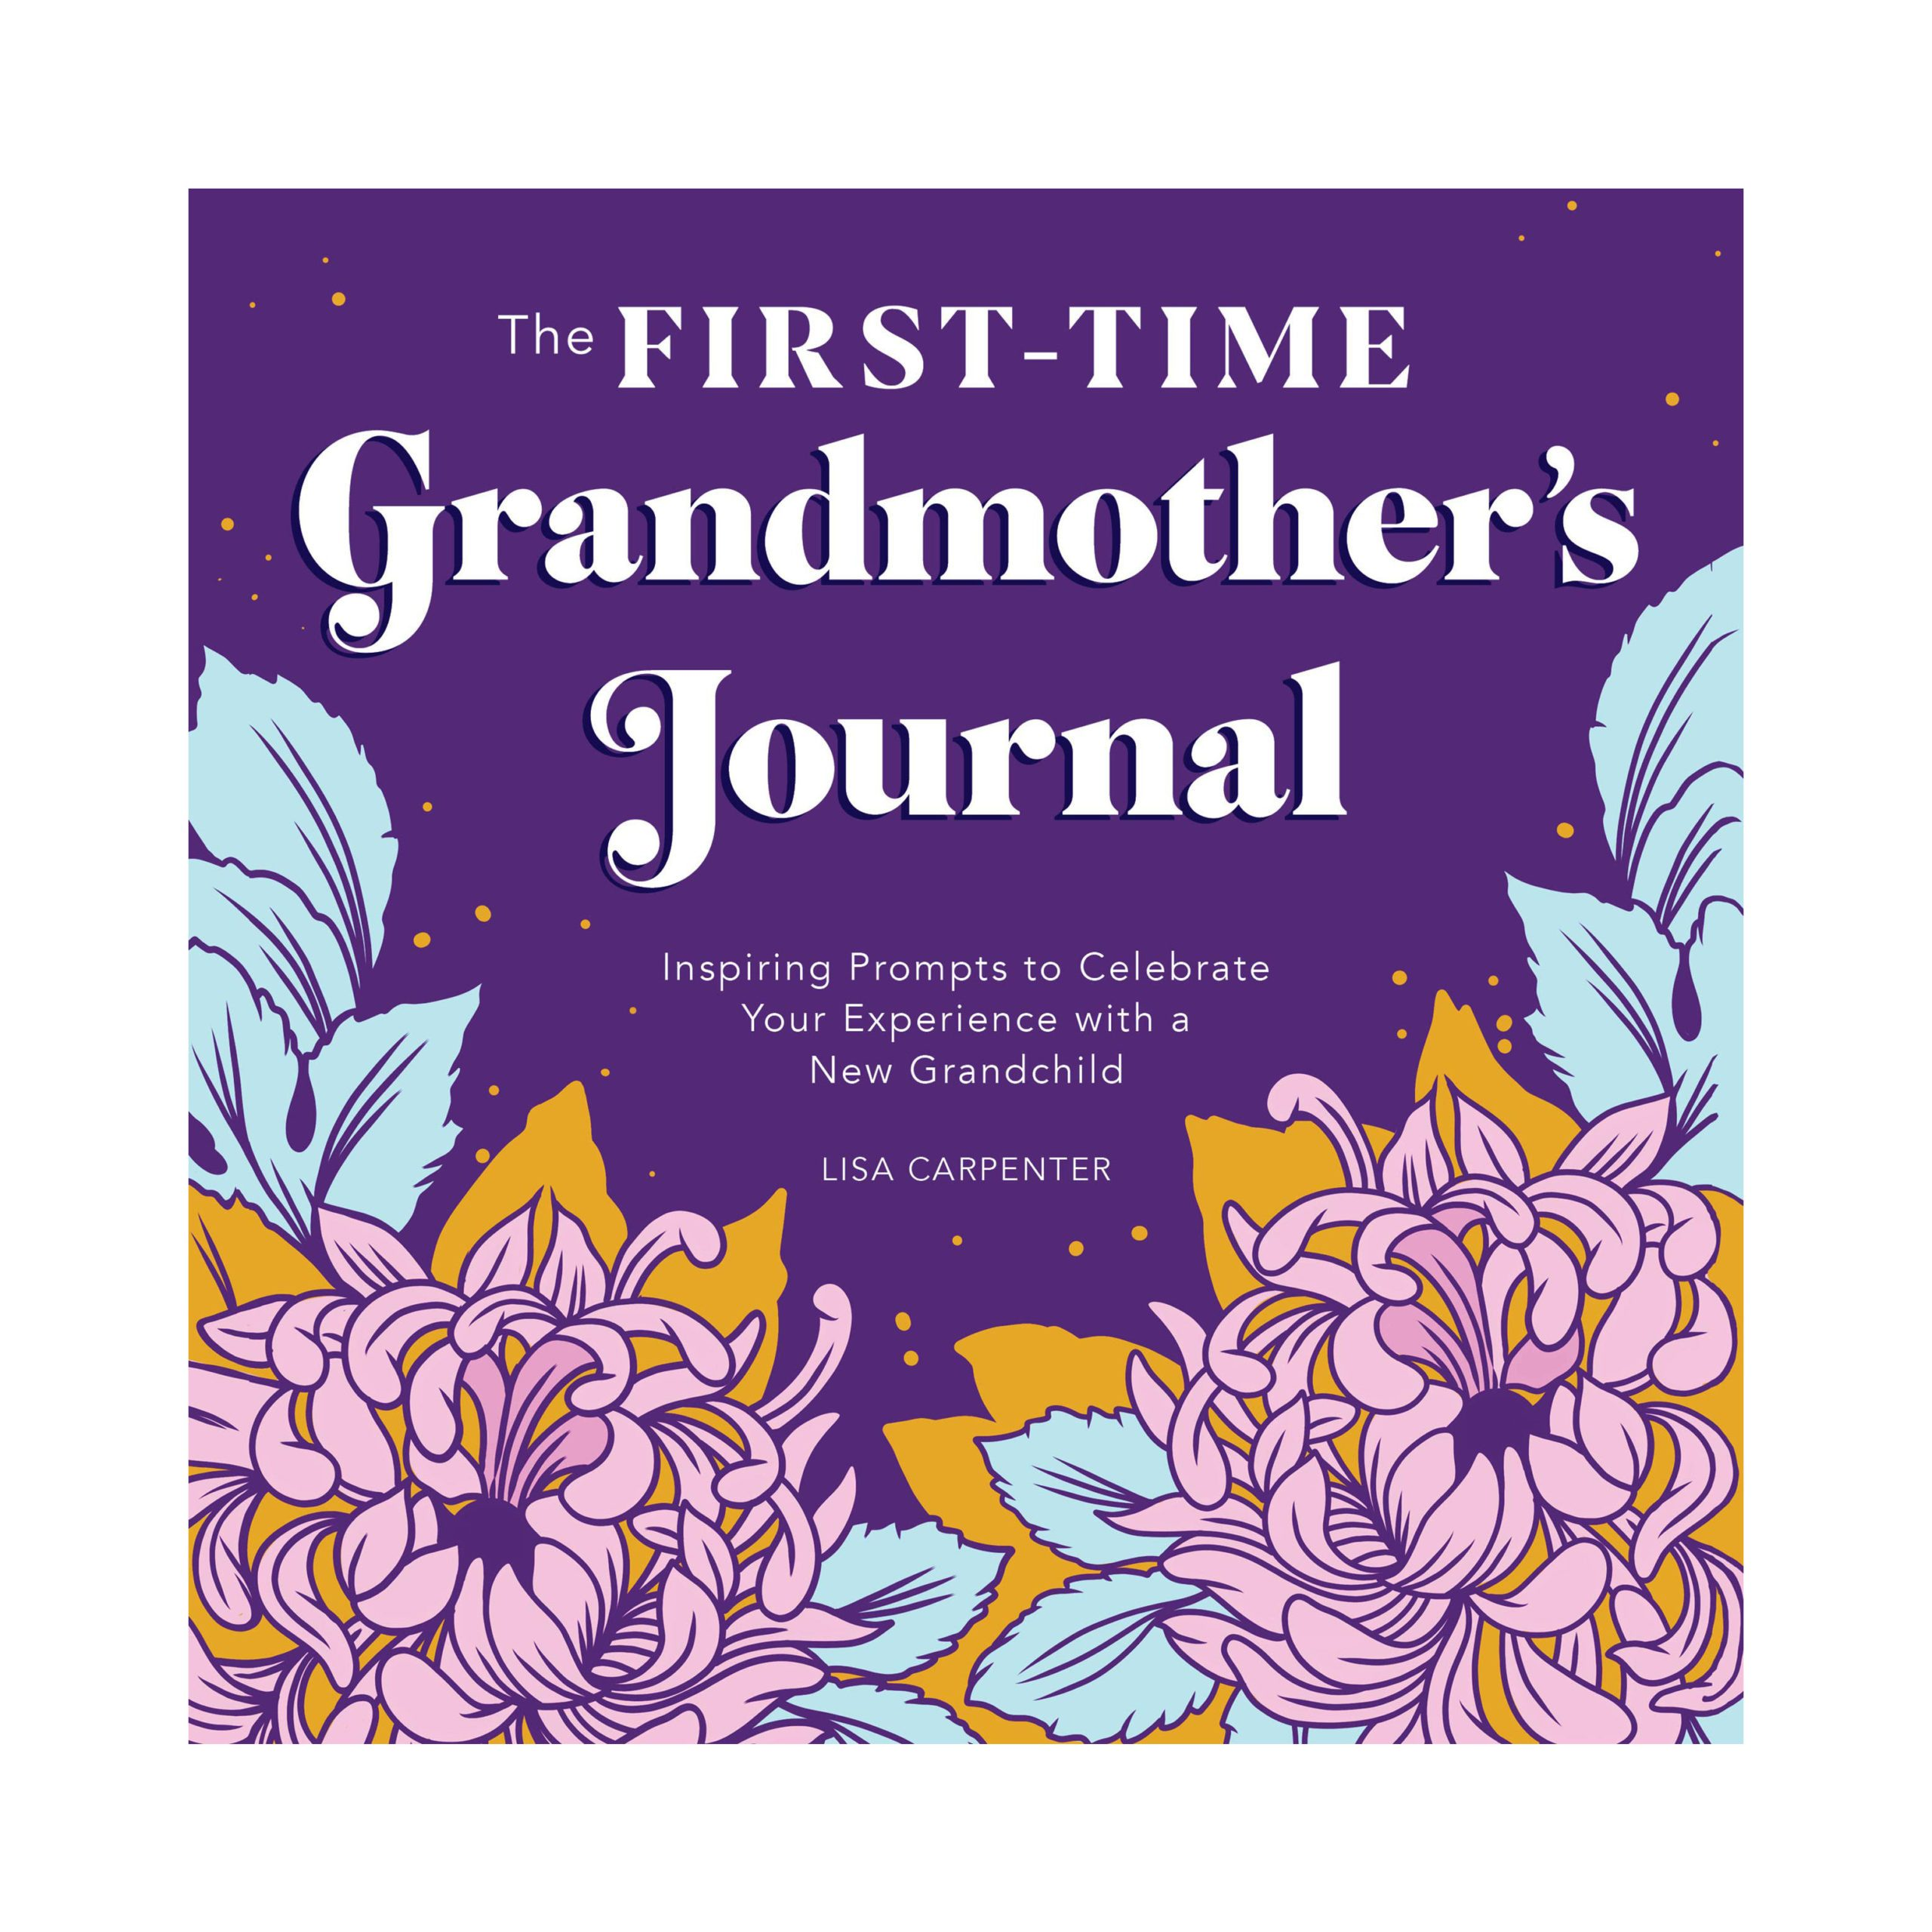 The First-Time Grandmother's Journal by Lisa Carpenter